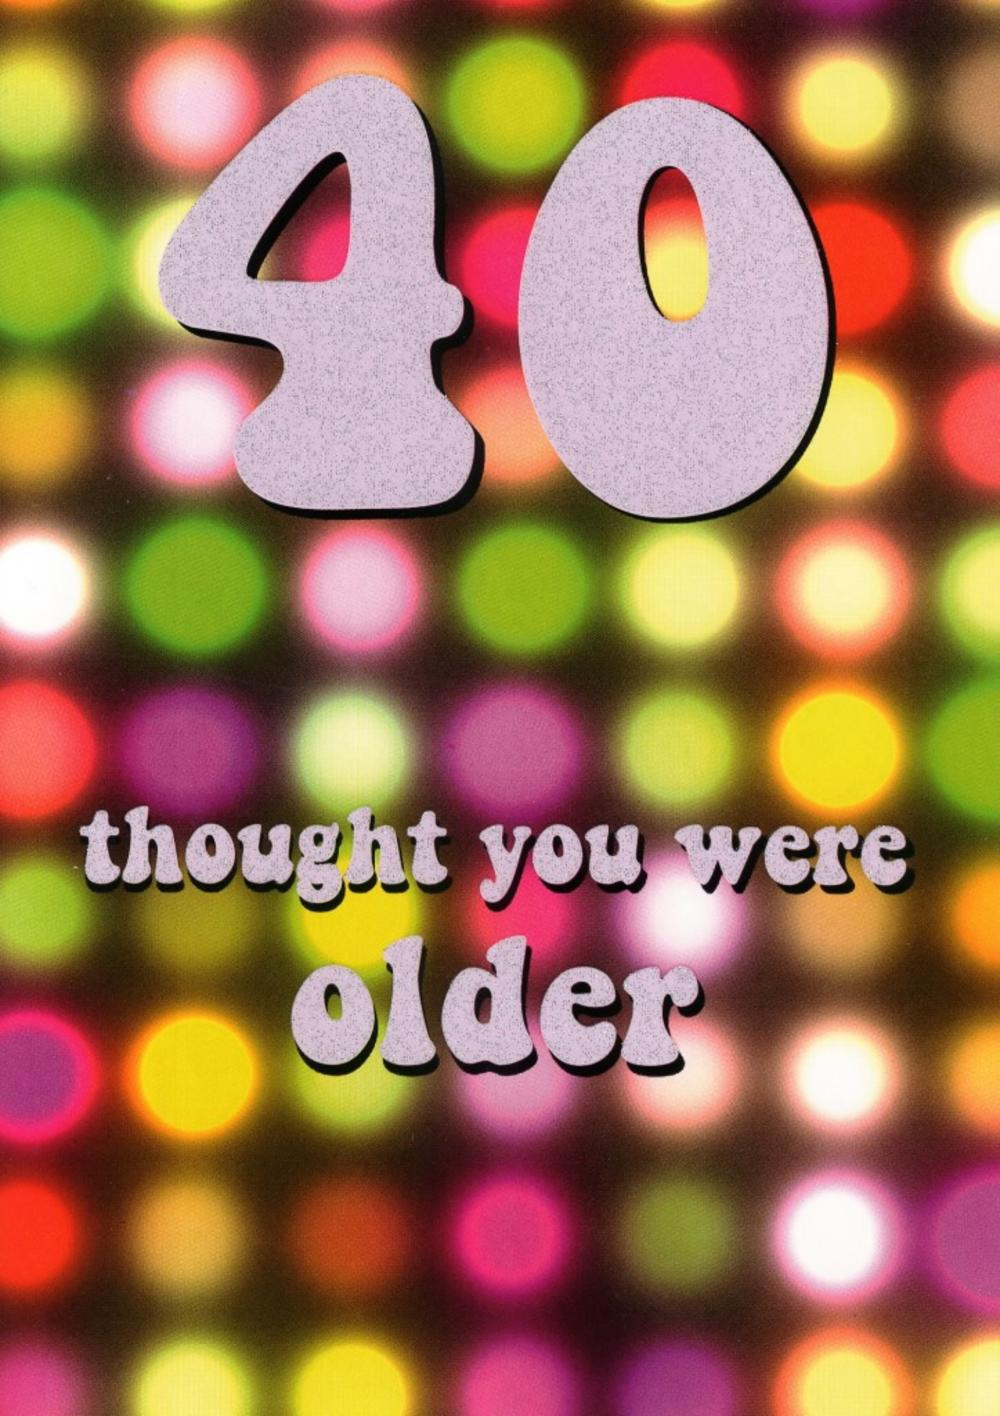 40 Thought You Were Older 40th Birthday Card